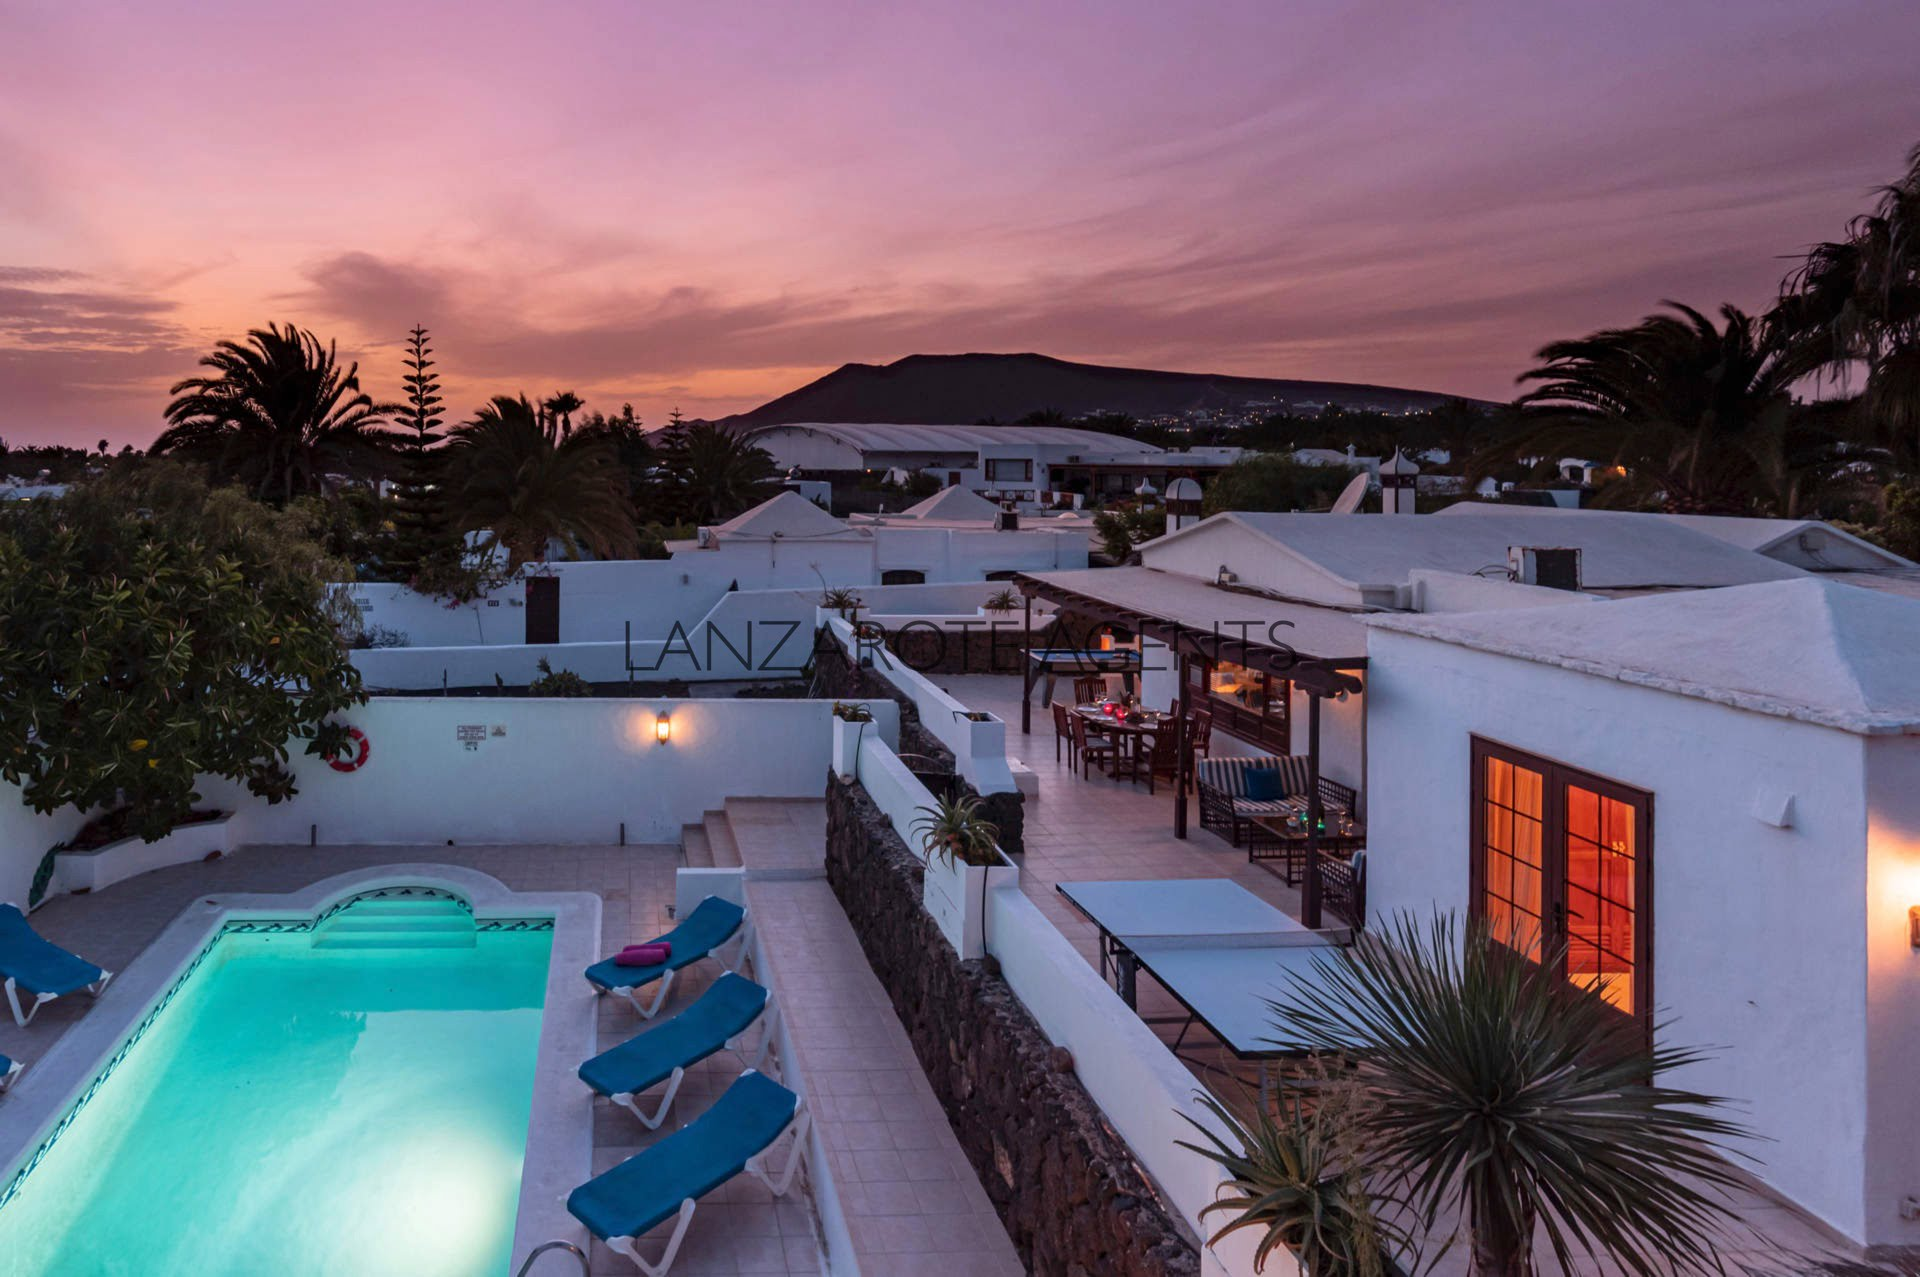 Fantastic Detached Villa in Las Margaritas on a Good Size Plot with Private Pool and Sea Views